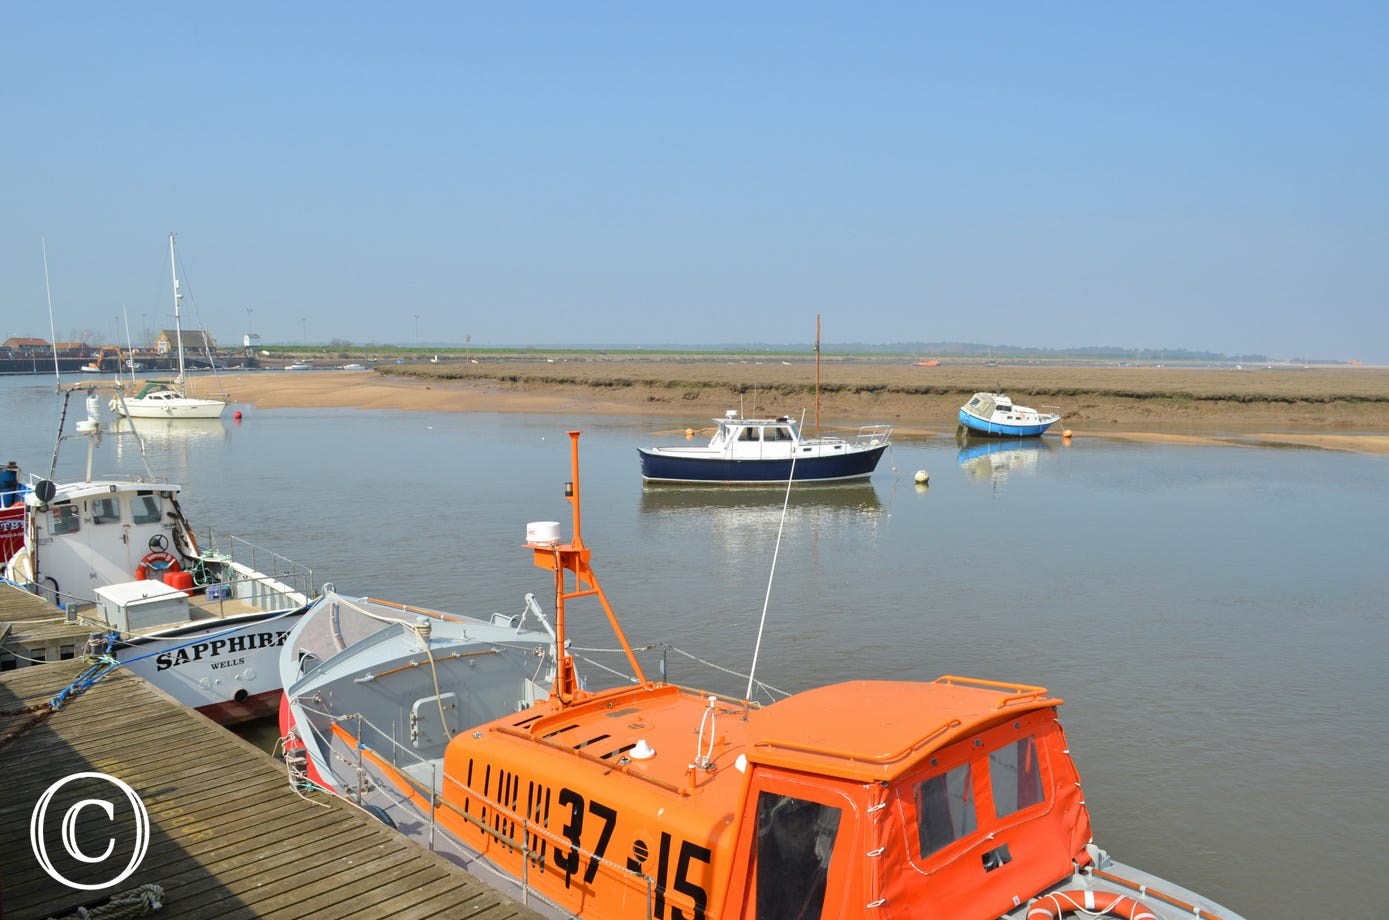 Super view of Wells Quay